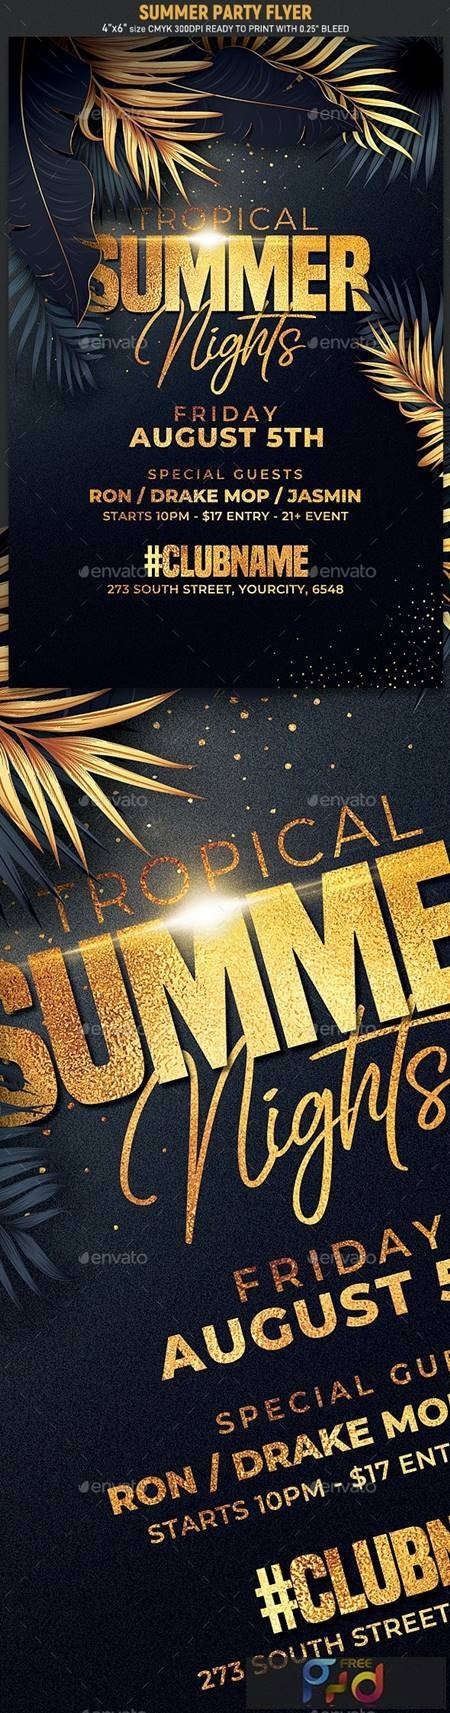 Classy Summer Party Flyer 24121415 1